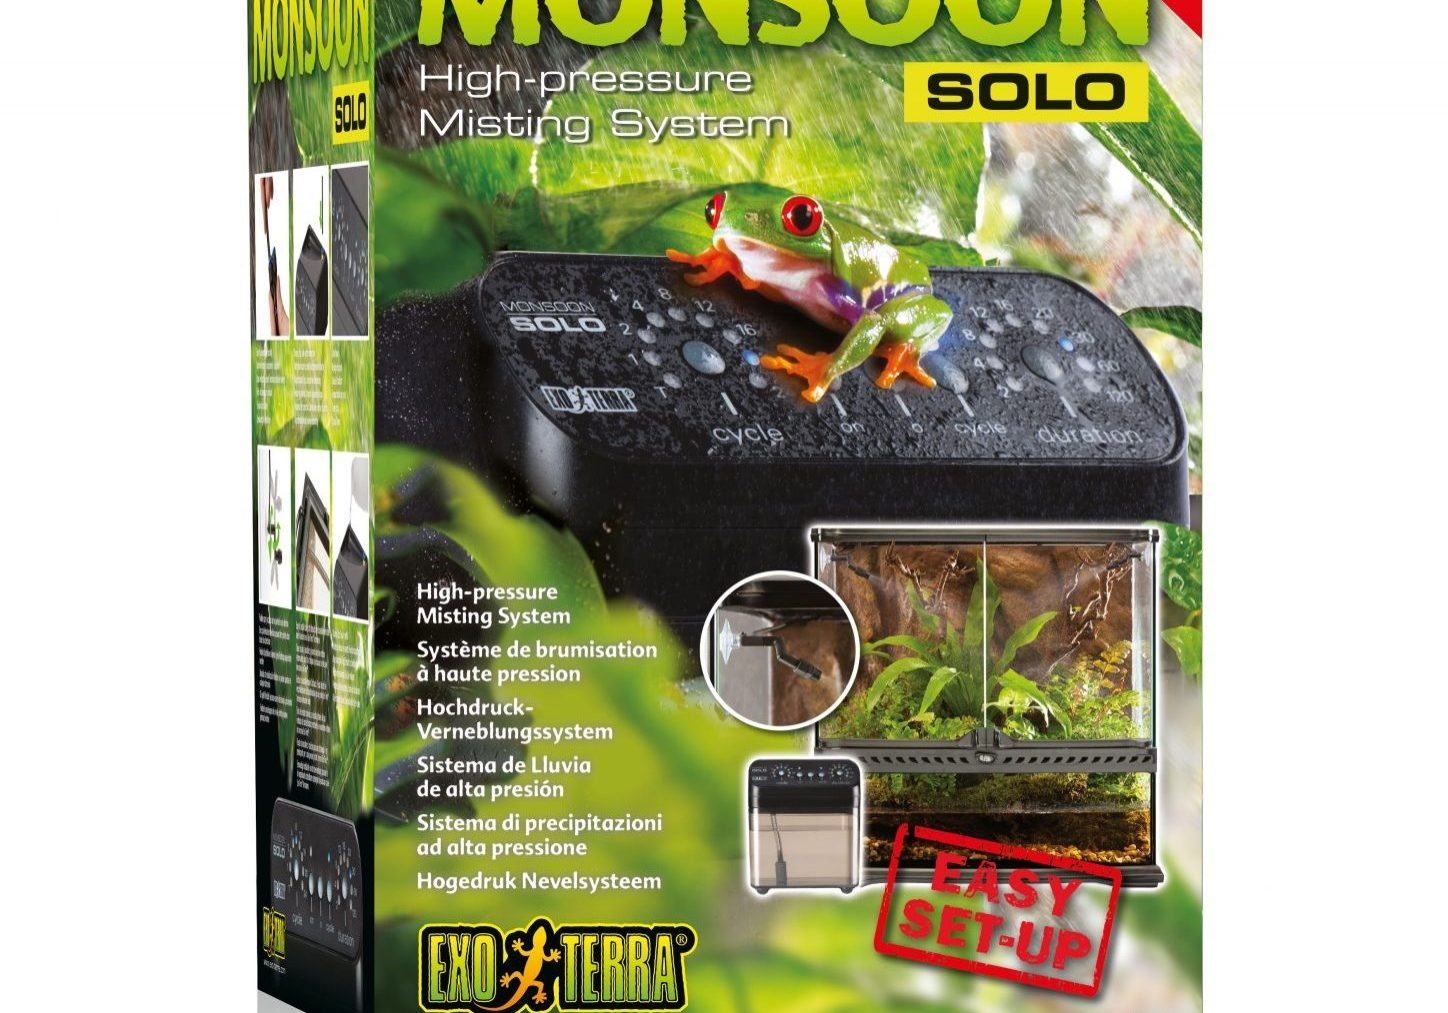 HR_Monsoon-Solo_PT2494_packaging